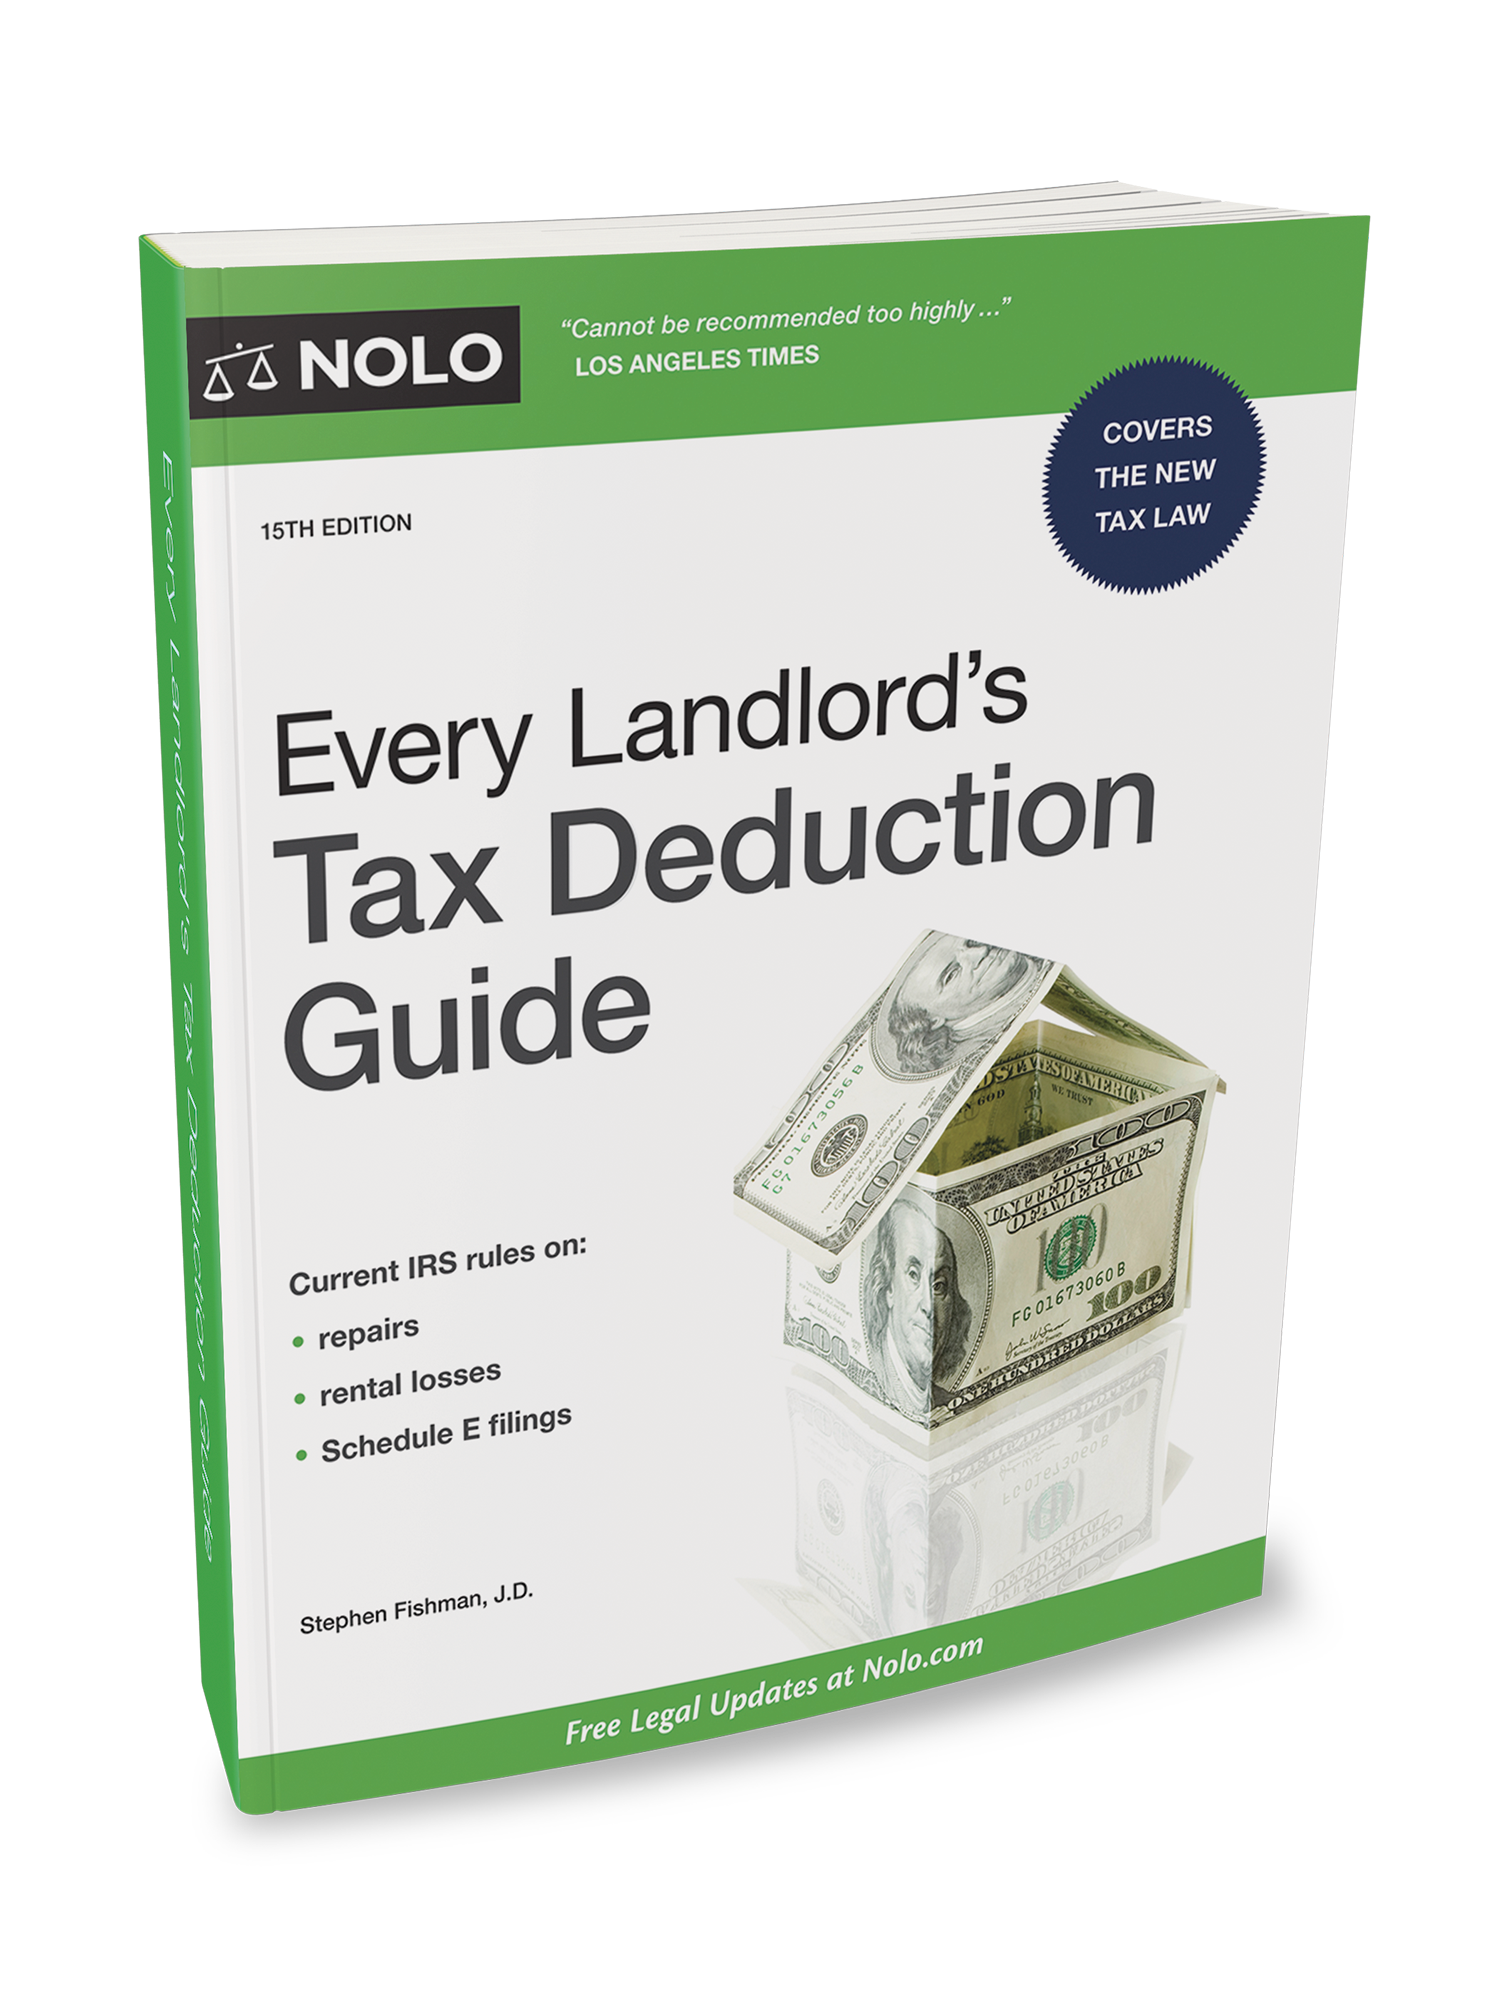 Every Landlord's Tax Deduction Guide (16th Edition) - #4759